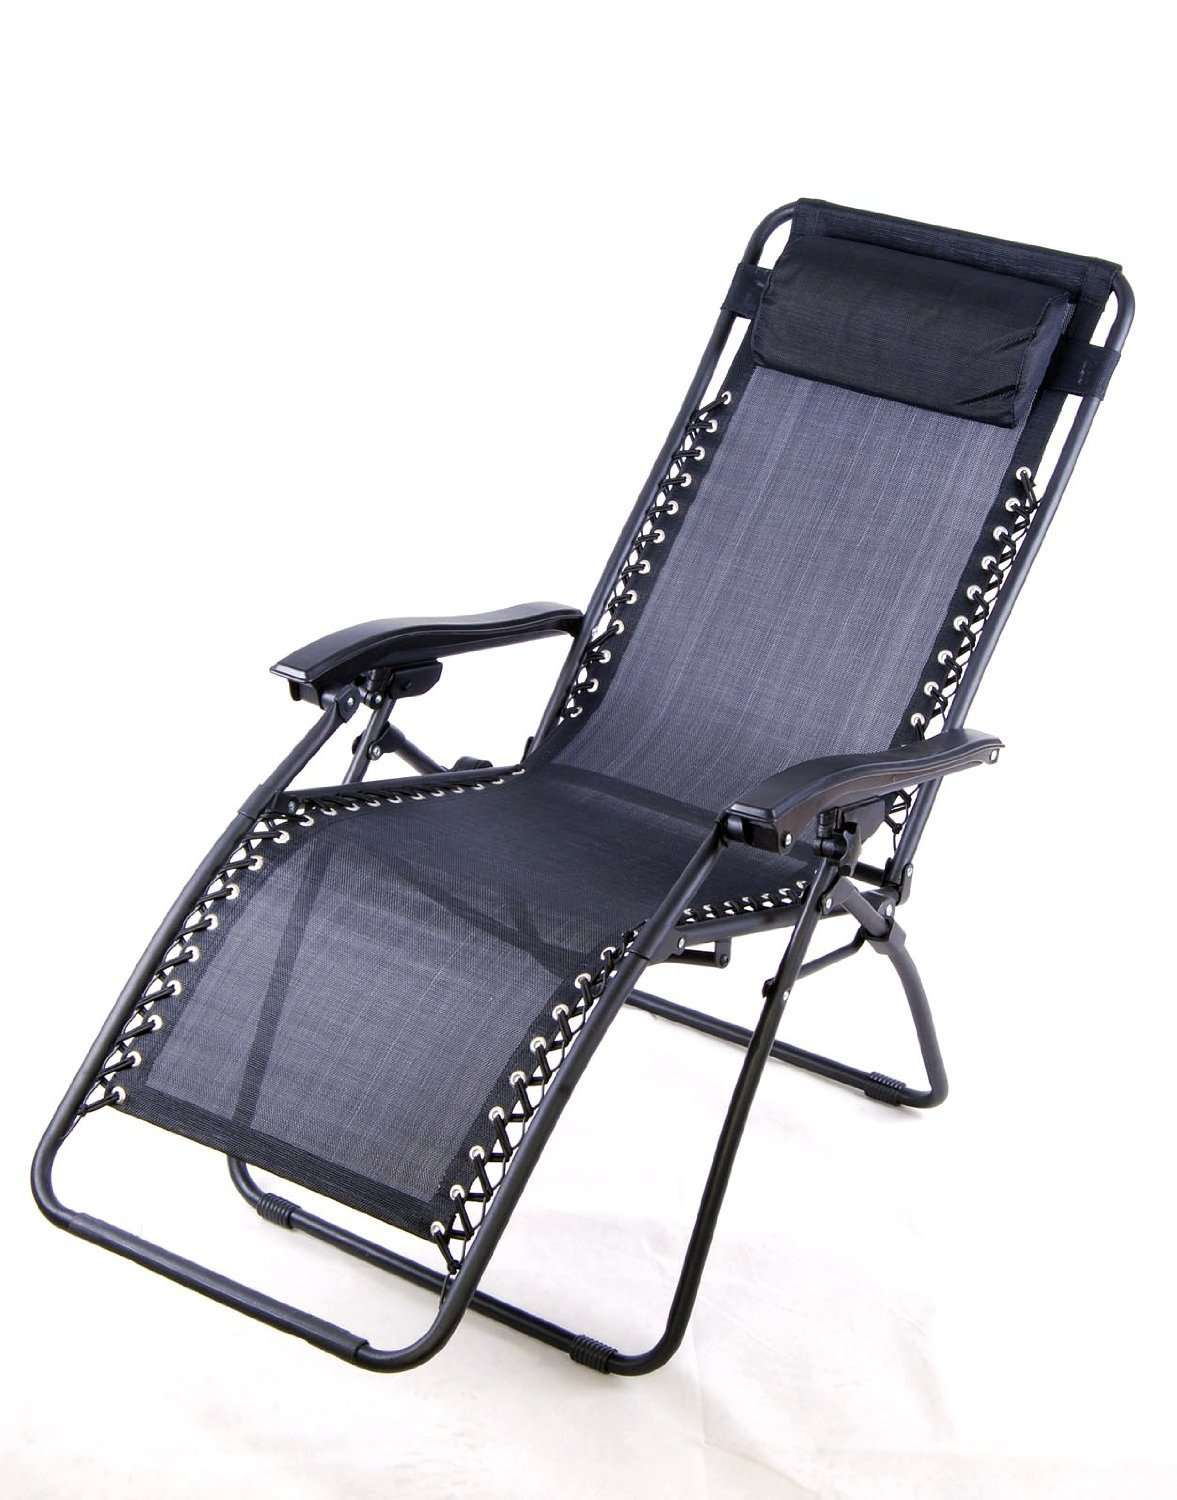 Outsunny Zero Gravity Recliner Lounge Patio Pool Chair  sc 1 st  Backyard Design And Party Planning : folding recliner lawn chair - islam-shia.org